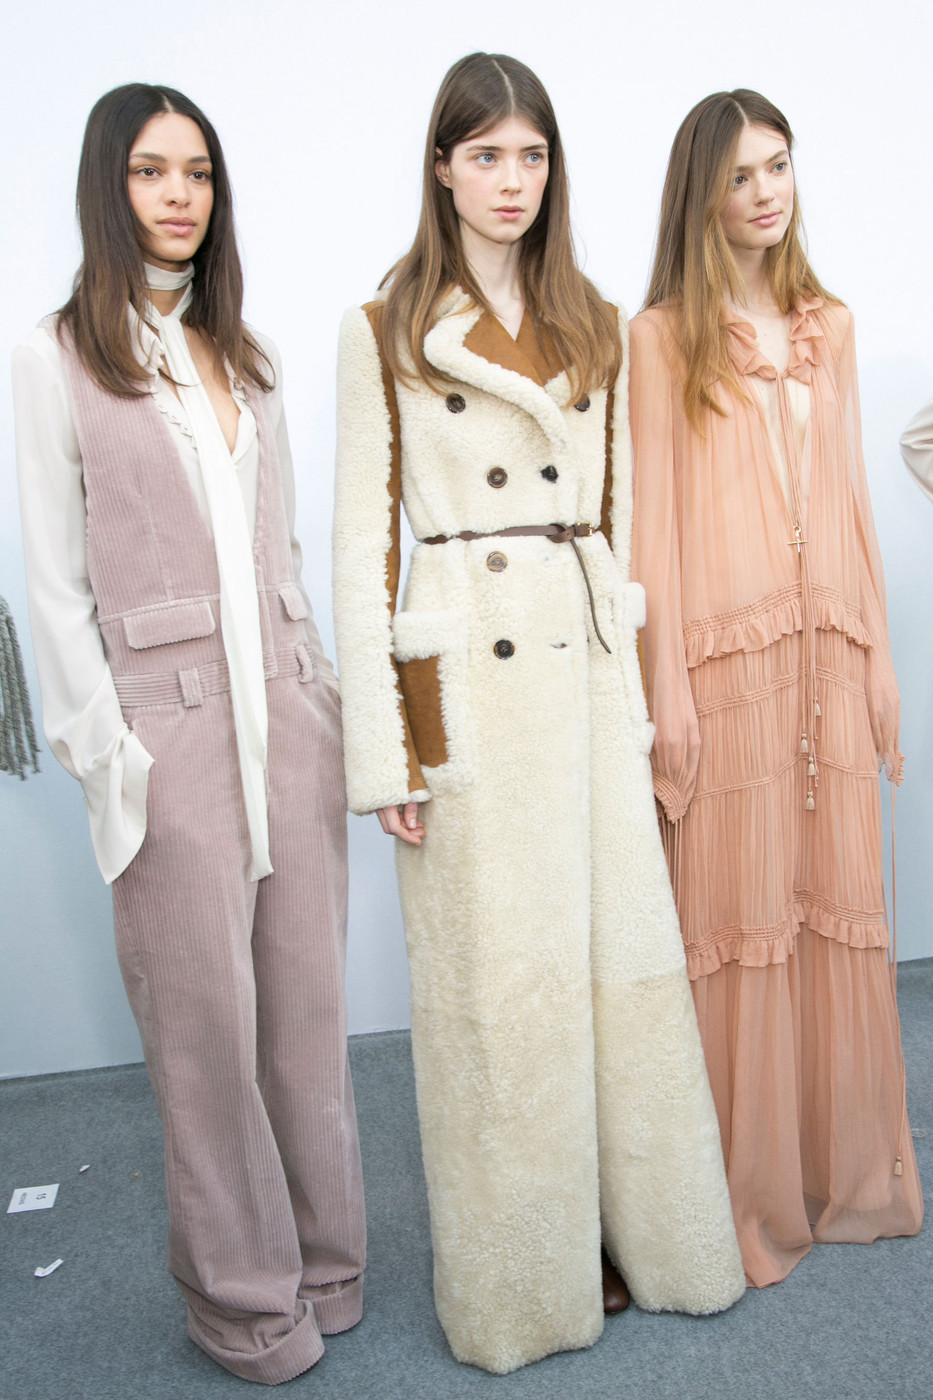 Chloe+Fall+2015+Backstage+58TGC_d-no2x.jpg